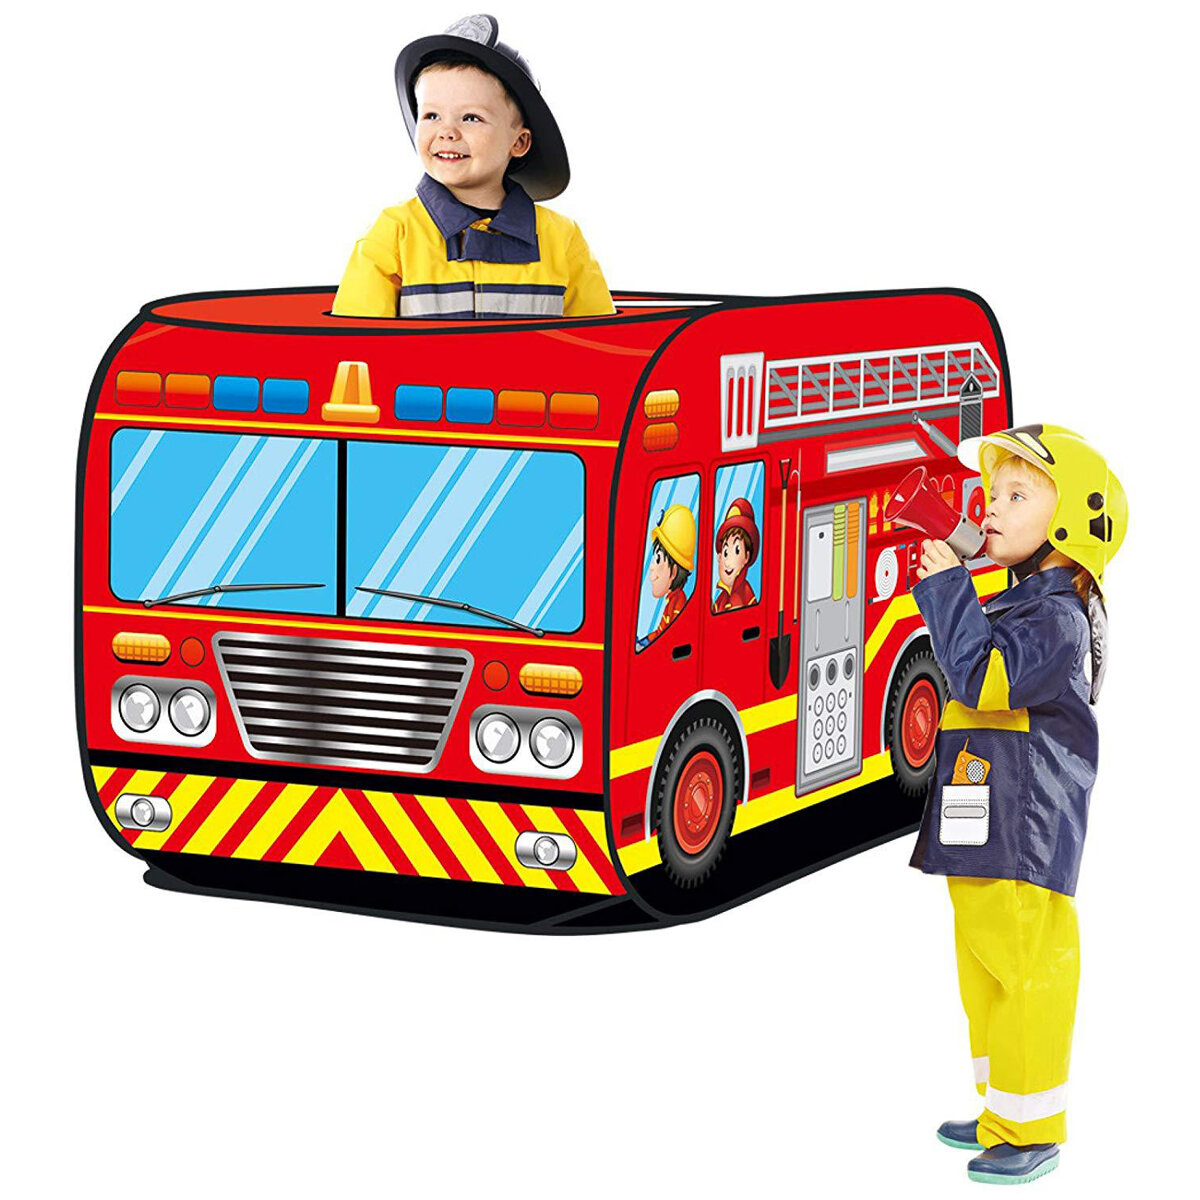 Foldable Game House Children's Play Tent Fire Truck Police Car School buses Ice-cream Truck Model House Kid's Toy Tent